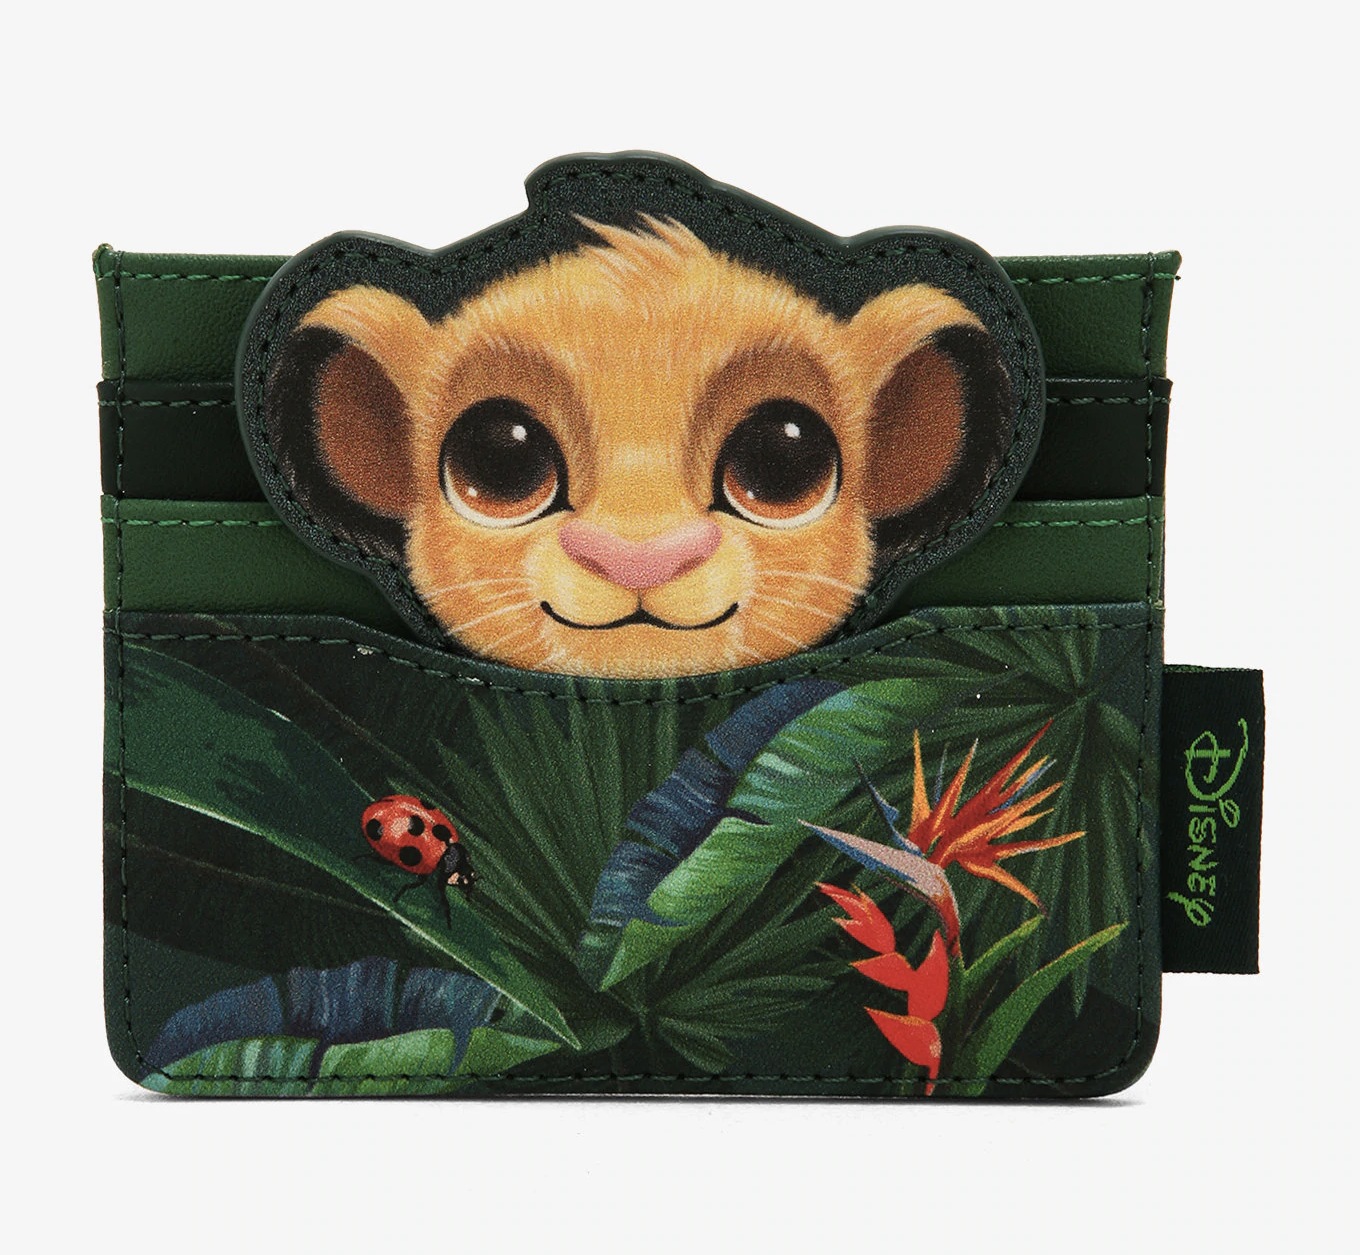 a jungle patterned billfold with baby simba's face on it